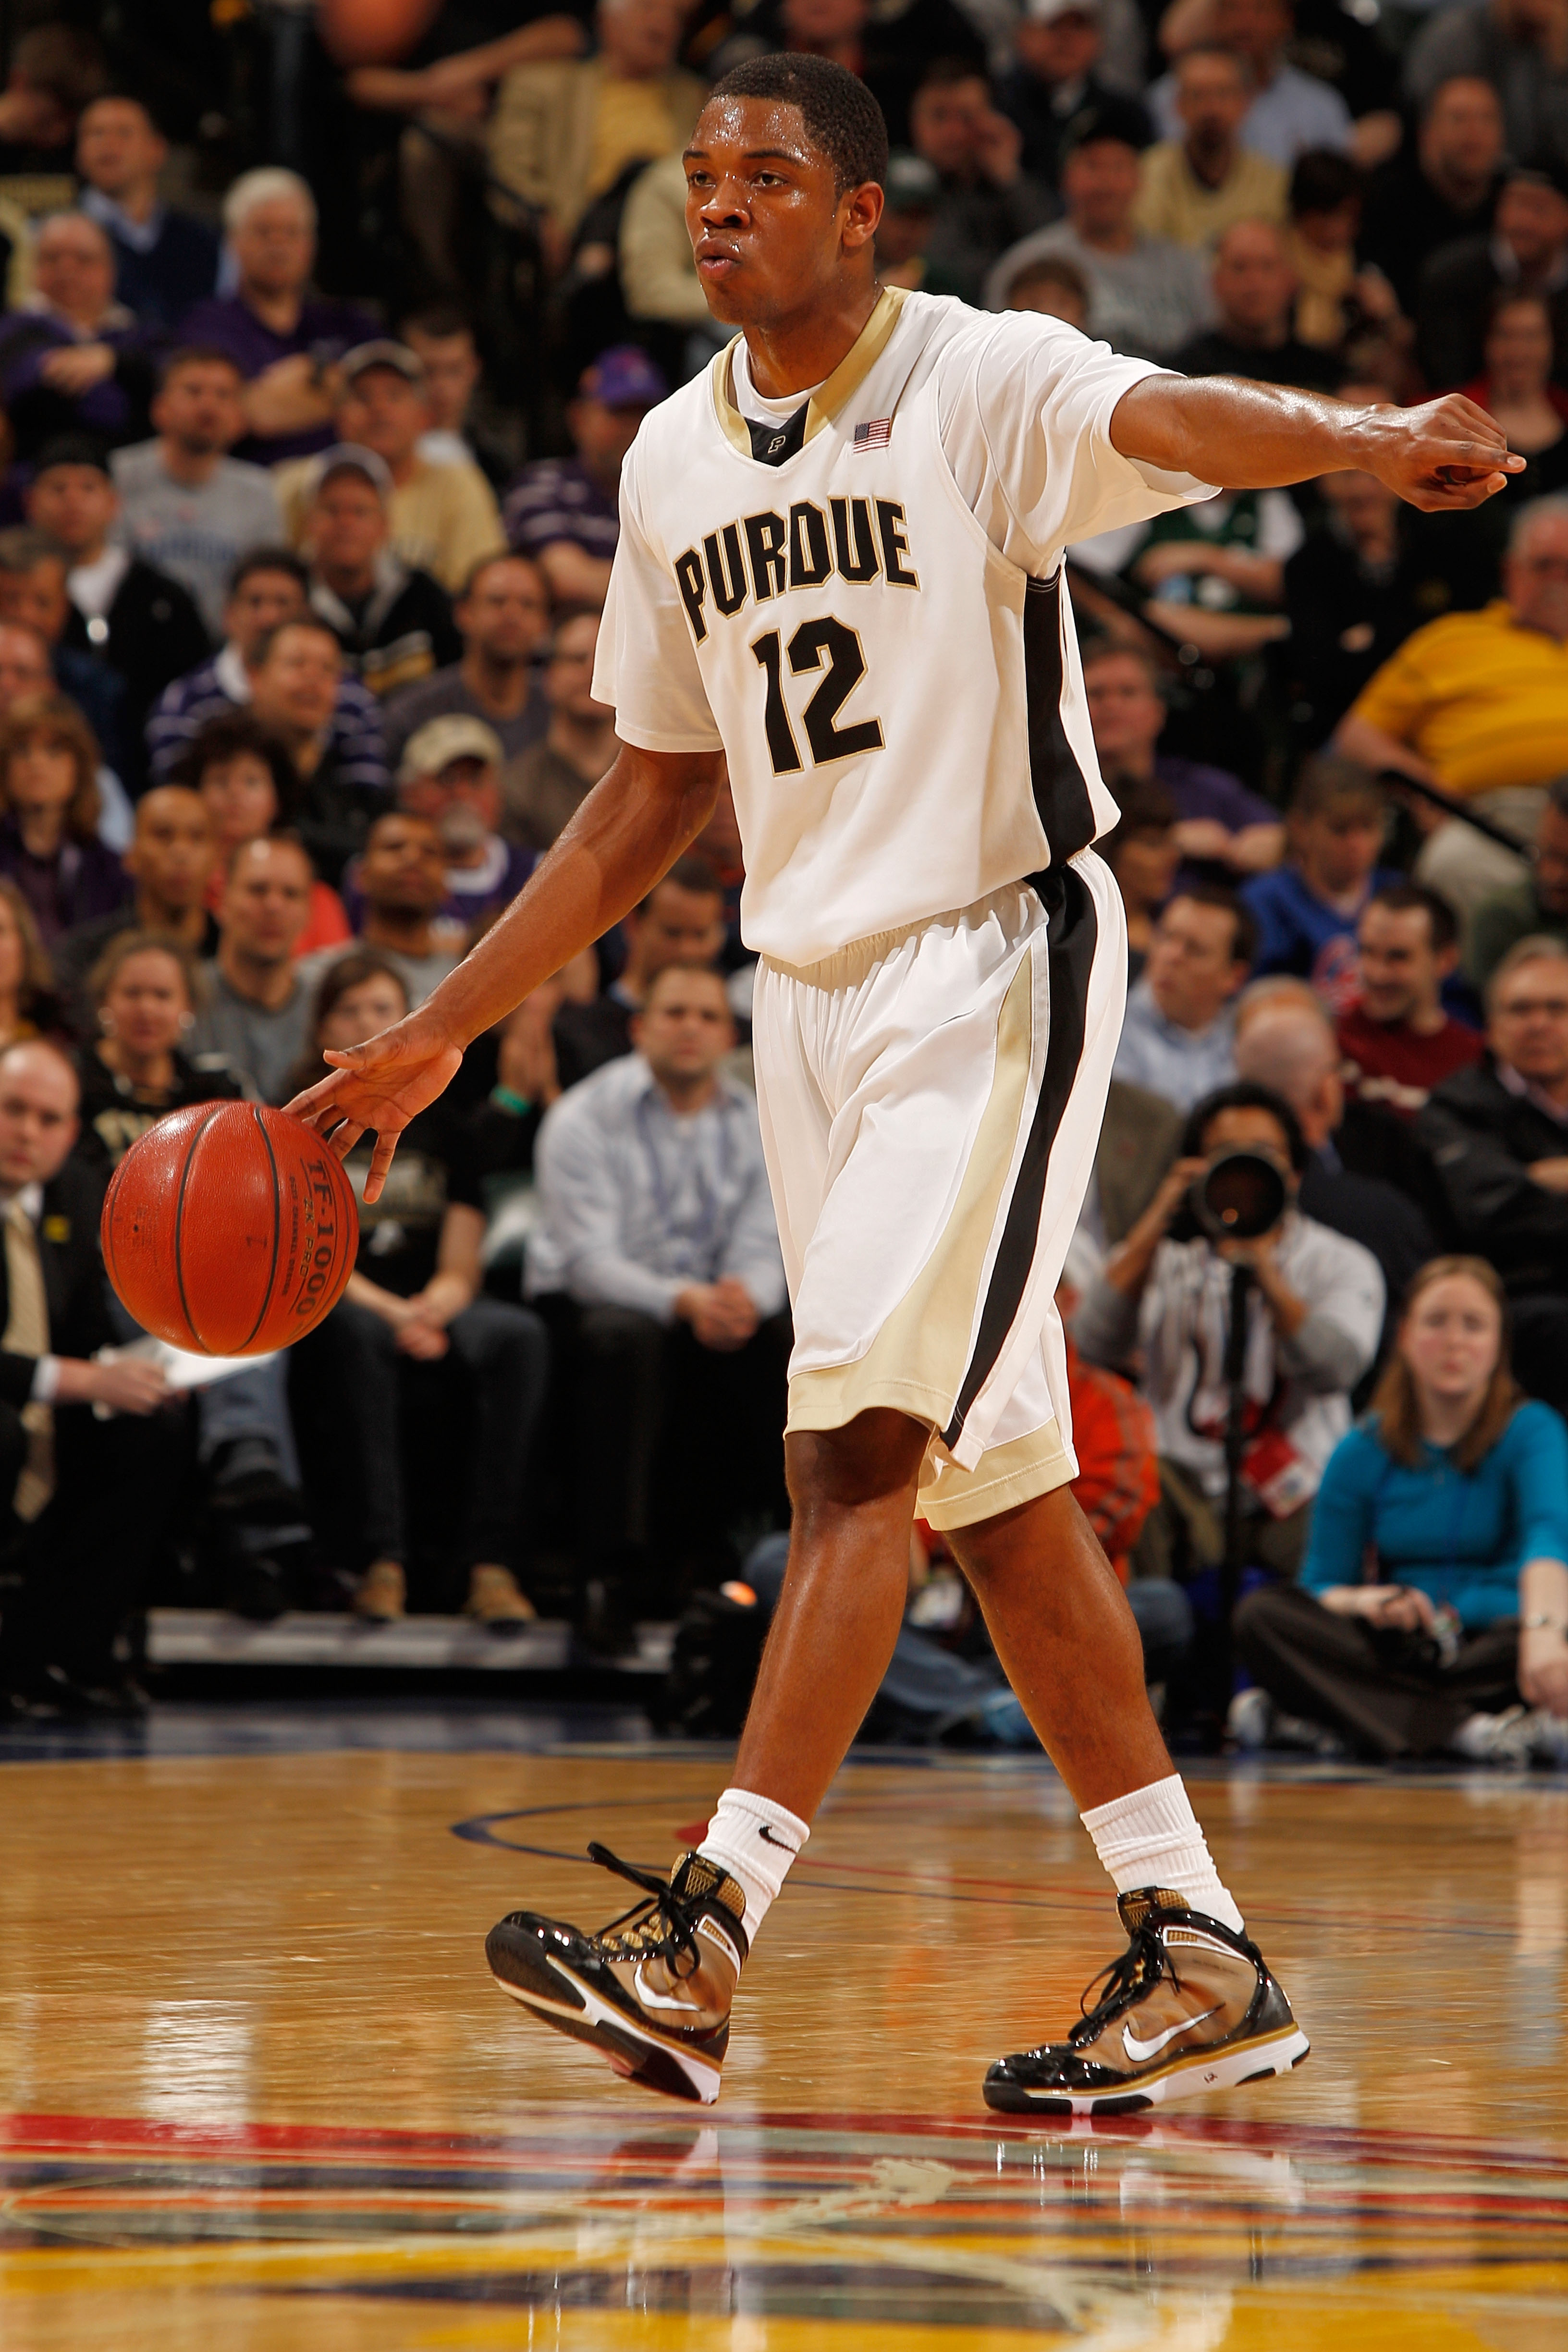 INDIANAPOLIS - MARCH 12:  Kelsey Barlow #12 of the Purdue Boilermakers dribbles the ball against the Northwestern Wildcats during the quarterfinals of the Big Ten Men's Basketball Tournament at Conseco Fieldhouse on March 12, 2010 in Indianapolis, Indiana